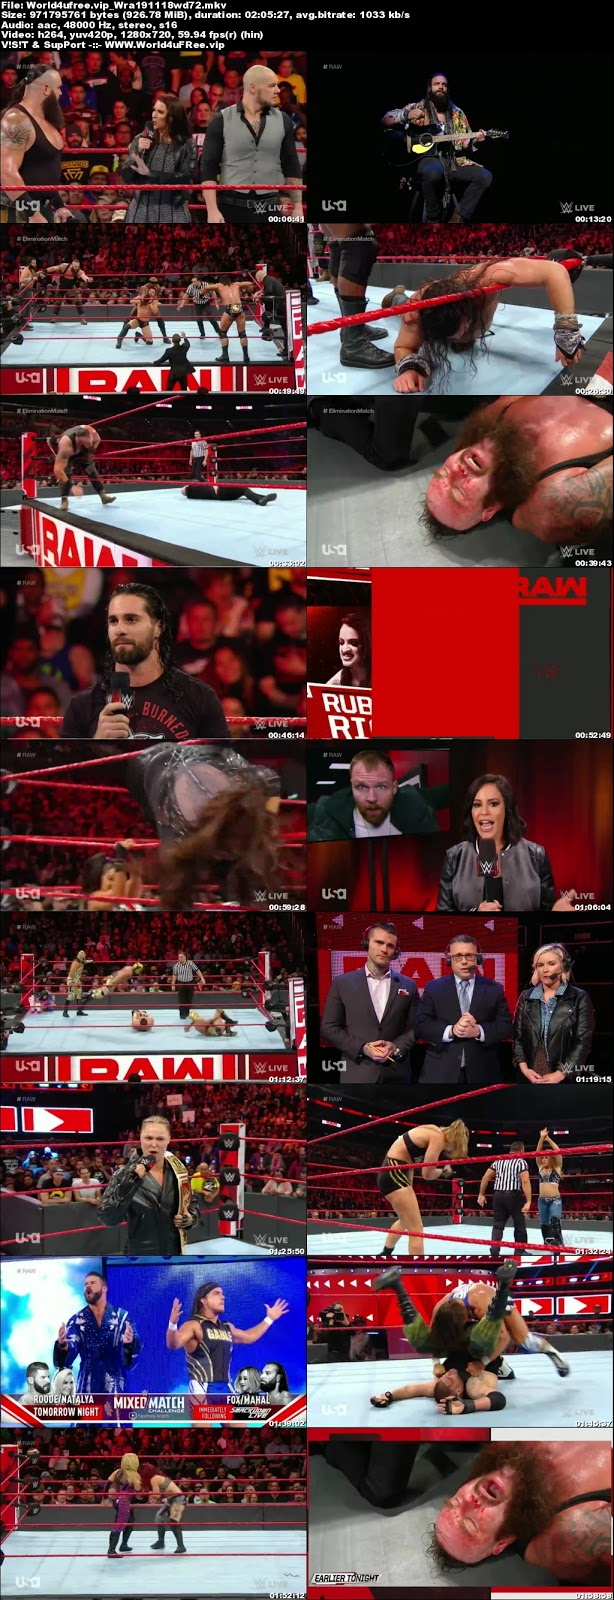 WWE Monday Night RAW 19 NOVEMBER 2018 720p HDTV 1Gb x264 world4ufree.vip tv show wwe monday night raw wwe show monday night raw compressed small size free download or watch onlne at world4ufree.vip